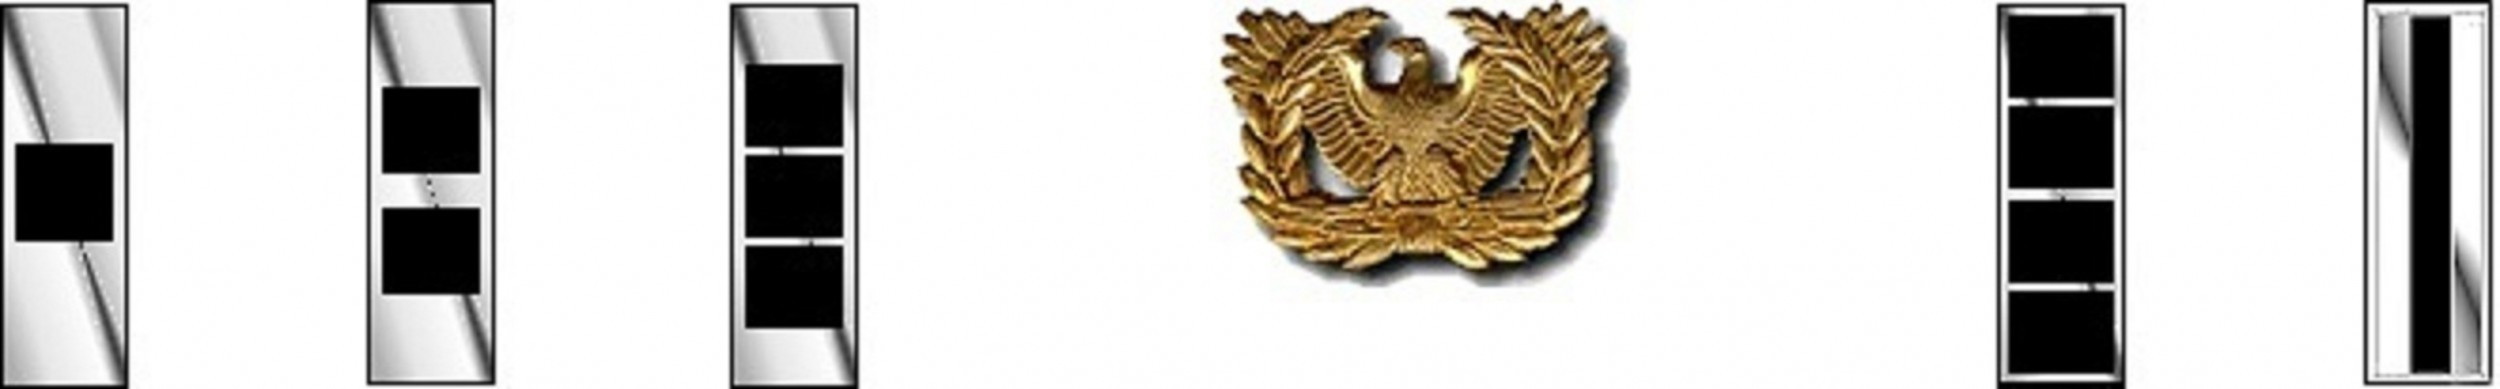 Warrant Officer Rank with Eagle Rising